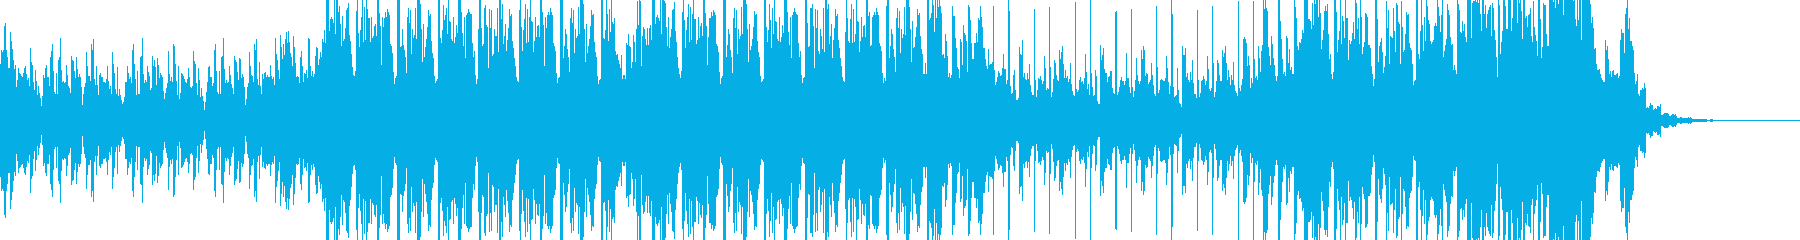 Simple house, garage's reproduced waveform